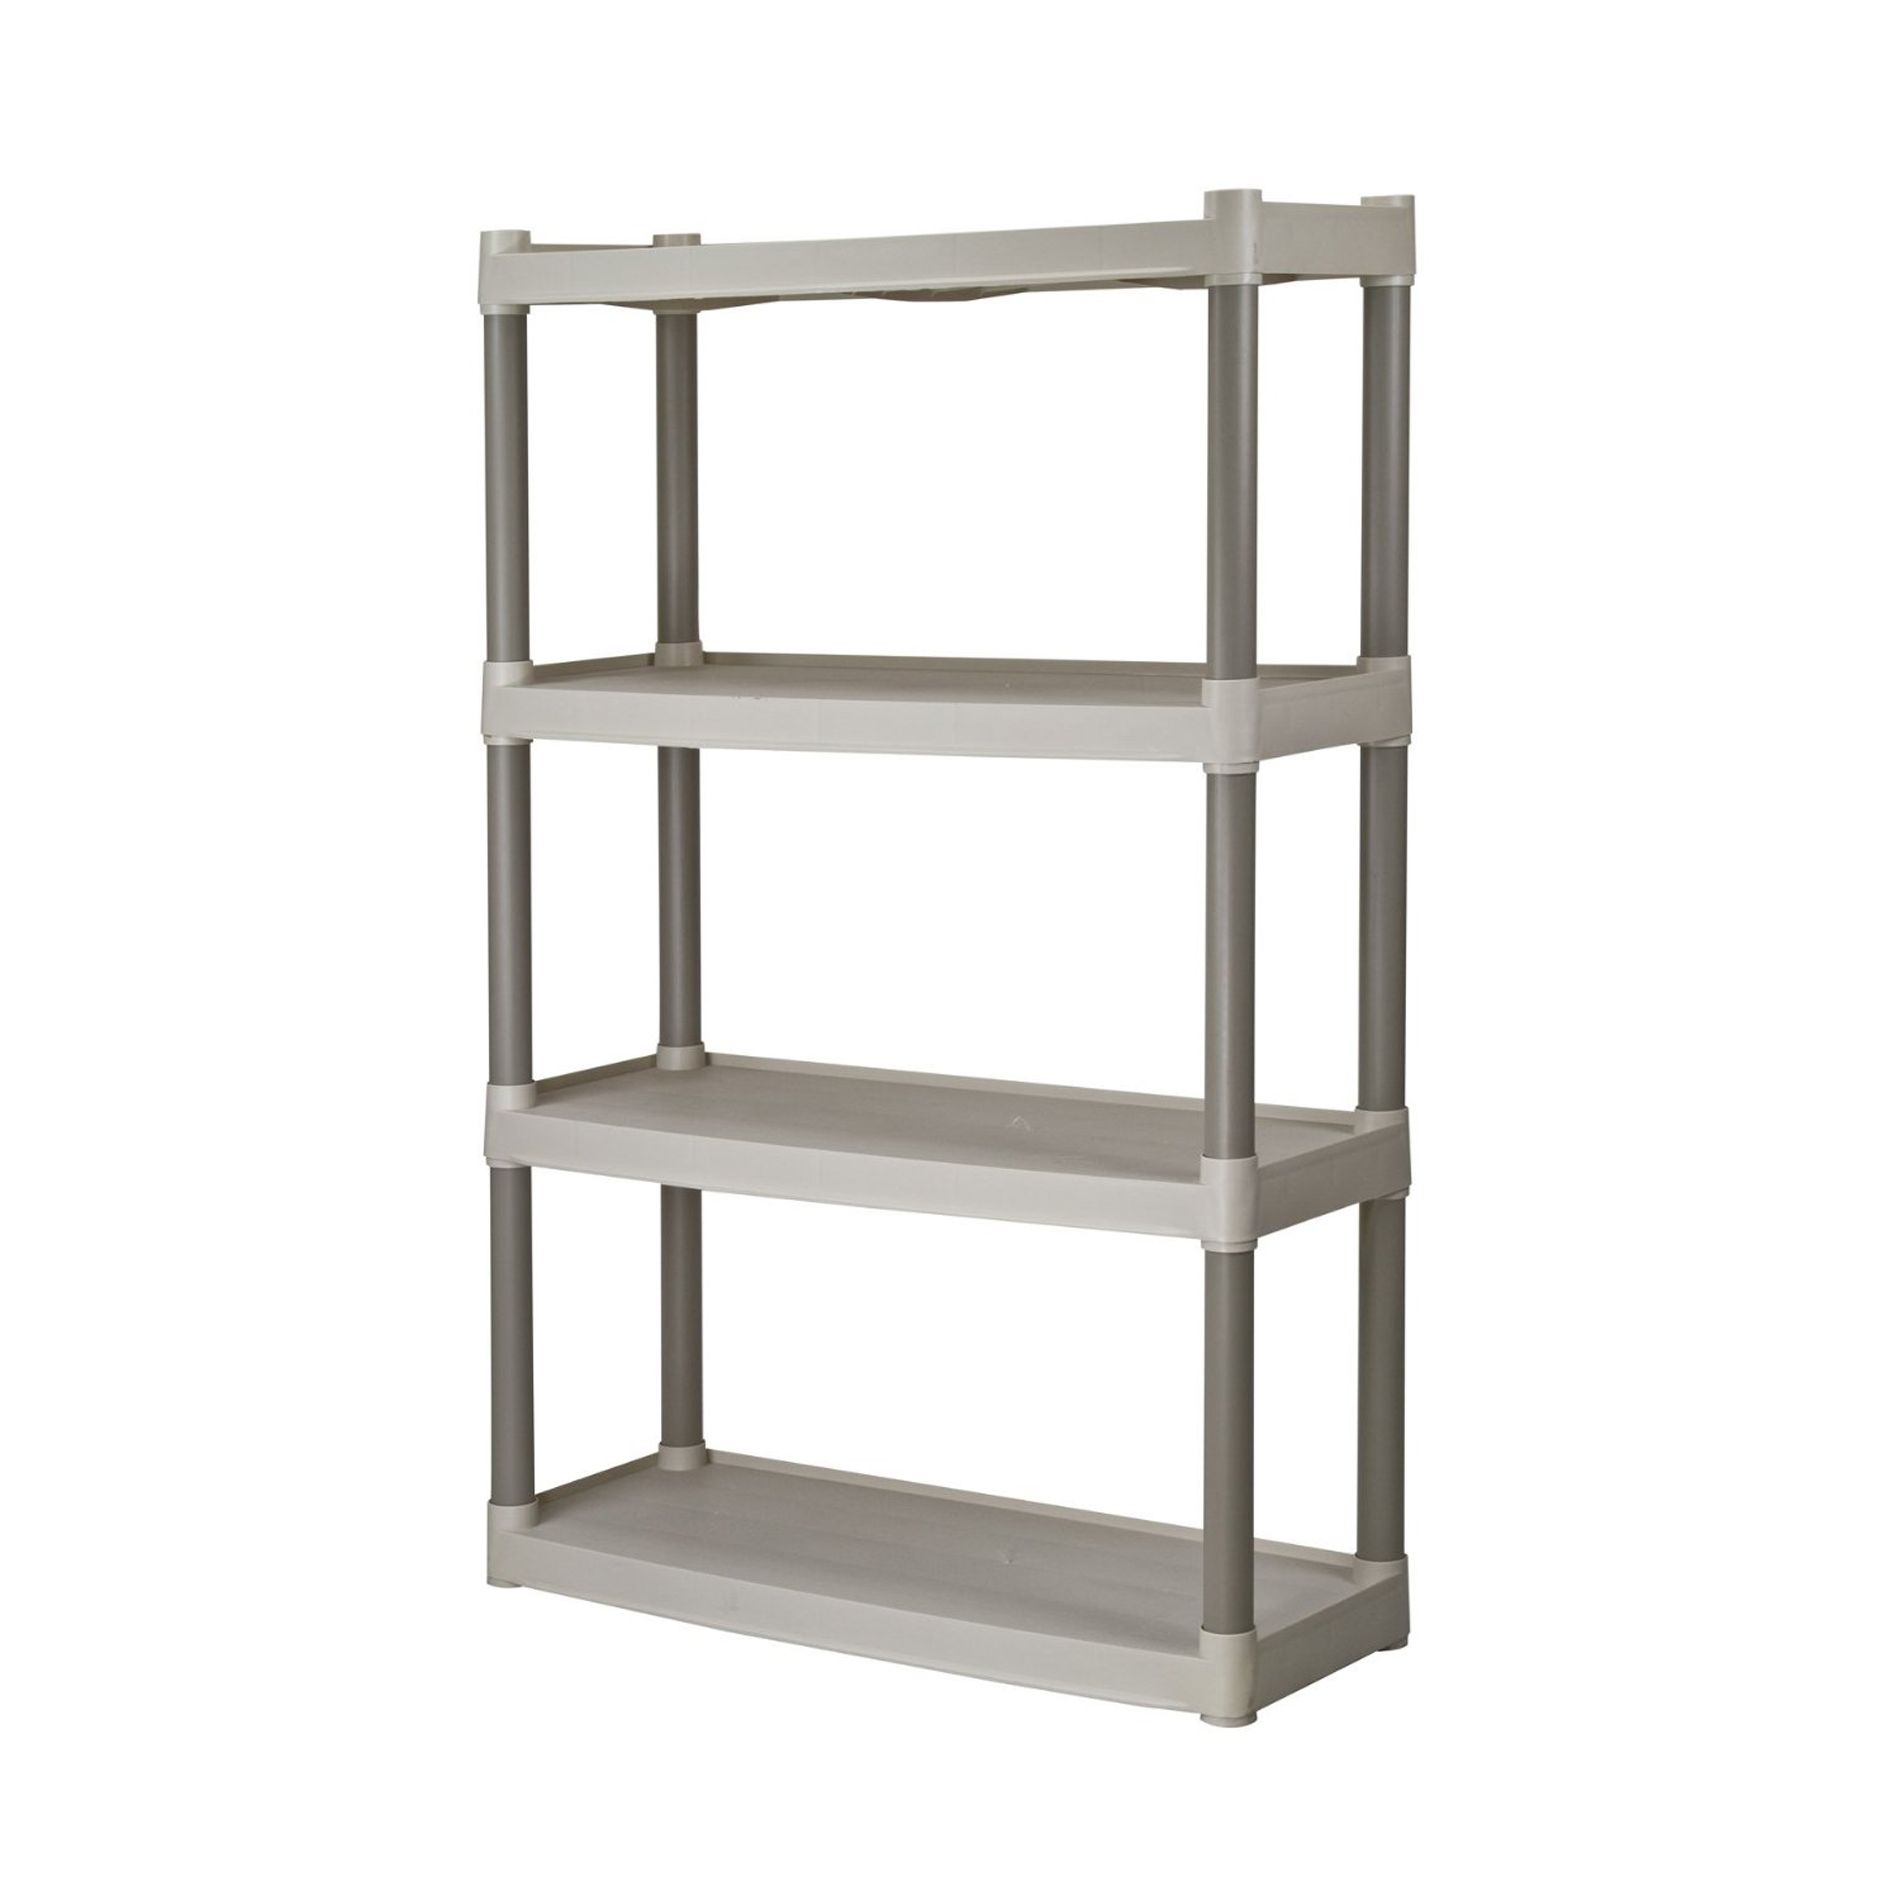 4-SHELF UTILITY RESIN SHELF                                                                                                      at mygofer.com